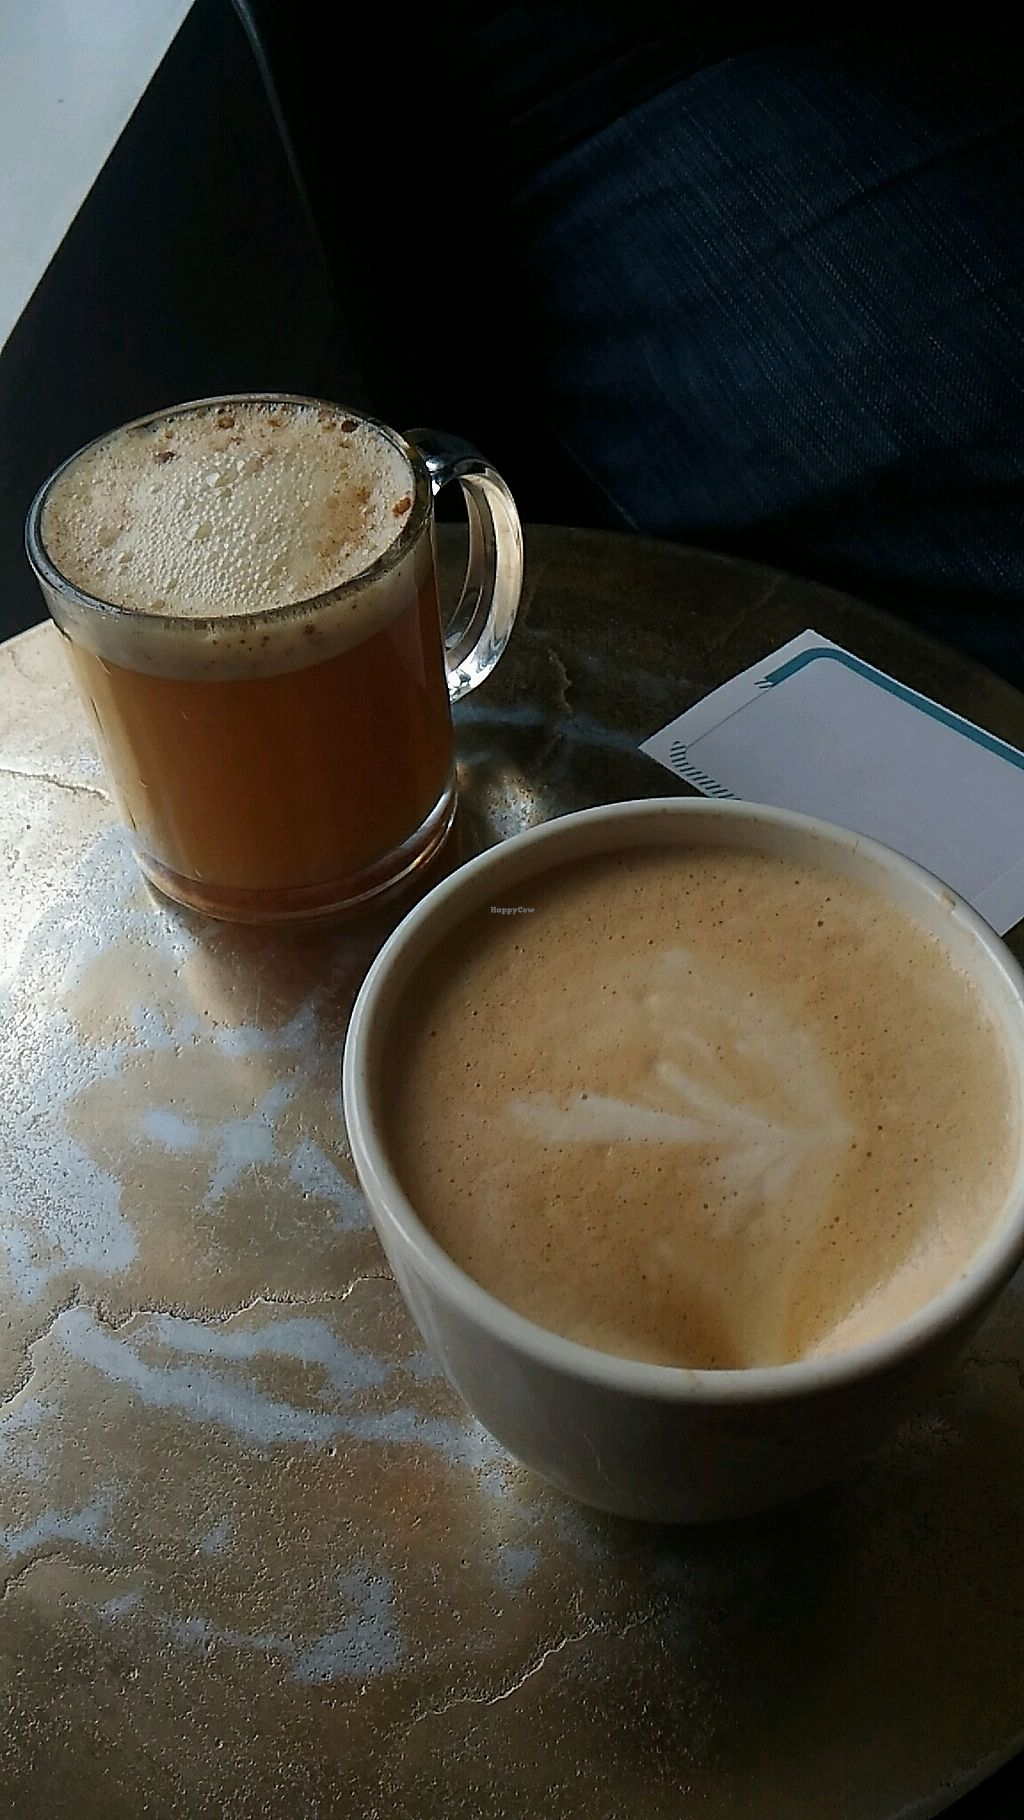 """Photo of Lucky Penny Coffee  by <a href=""""/members/profile/QuothTheRaven"""">QuothTheRaven</a> <br/>peppermint soy steamer and hot apple cider  <br/> December 10, 2017  - <a href='/contact/abuse/image/101859/334396'>Report</a>"""